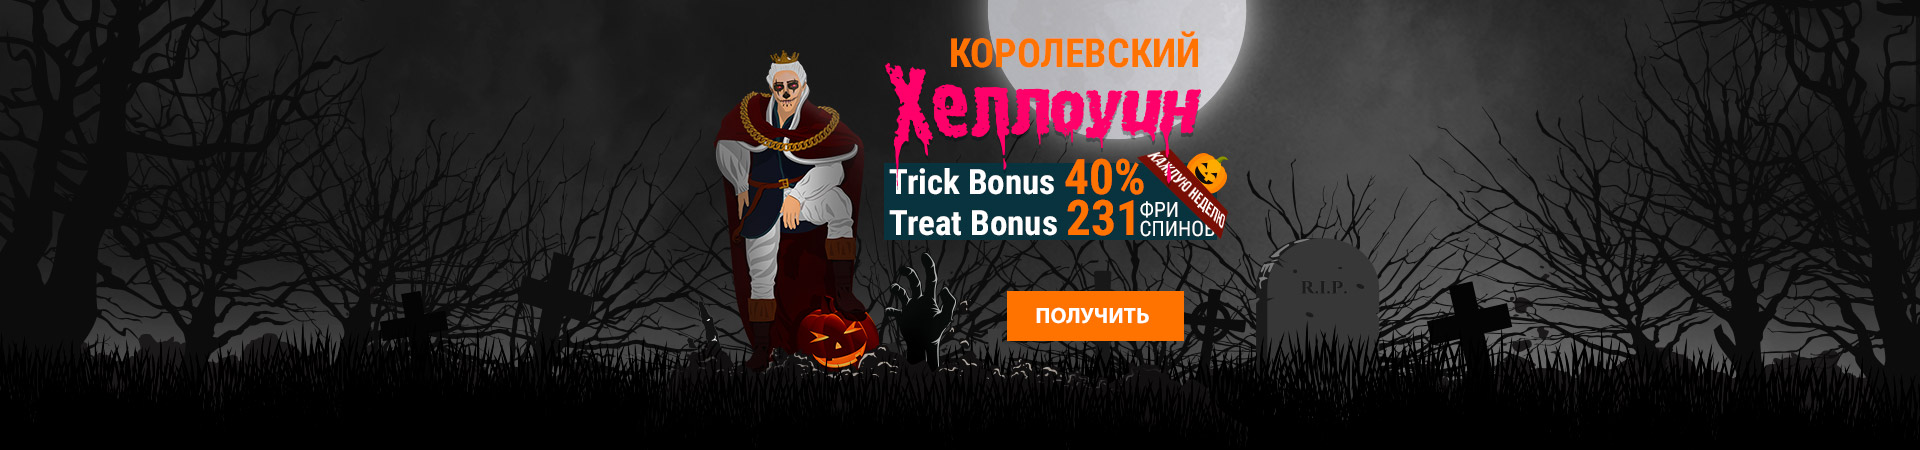 2020 10 King Billy Russian King's Halloween 1920x450